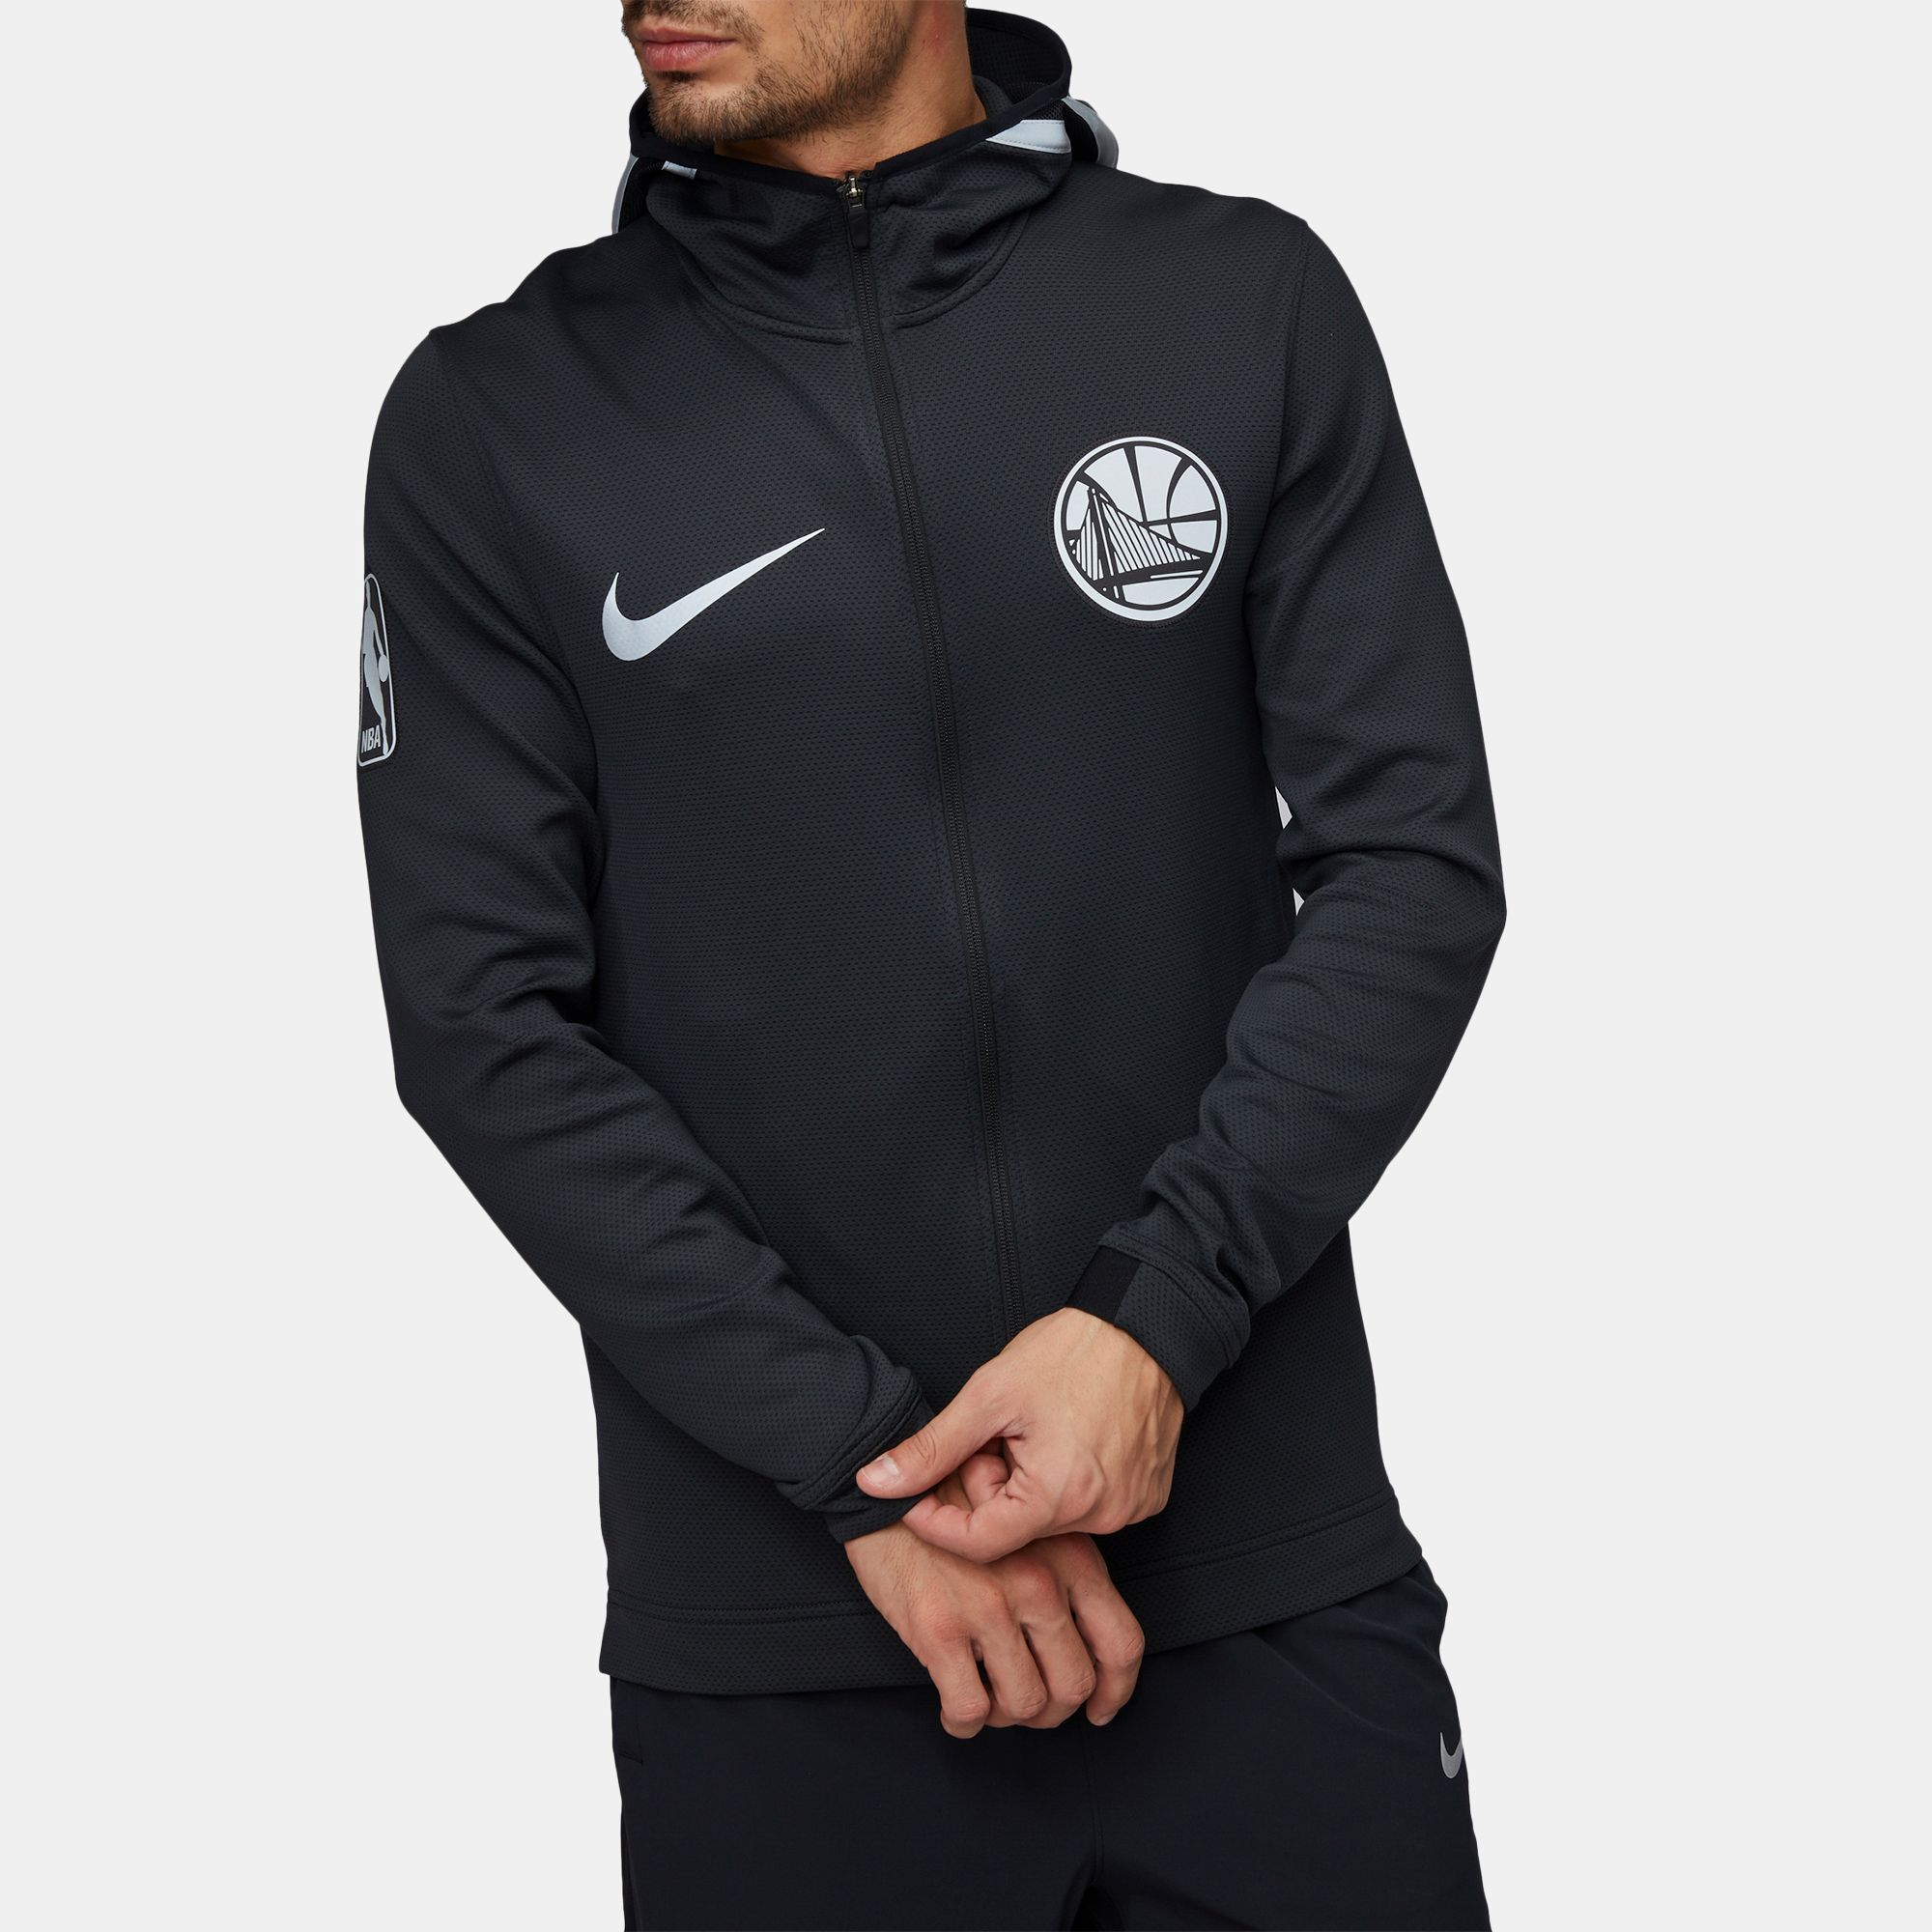 52c628b56 Nike NBA Golden State Warriors Therma Flex Showtime Full Zip Hoodie |  Hoodies | Hoodies and Sweatshirts | Clothing | Men's Sale | KSA Sale | SSS